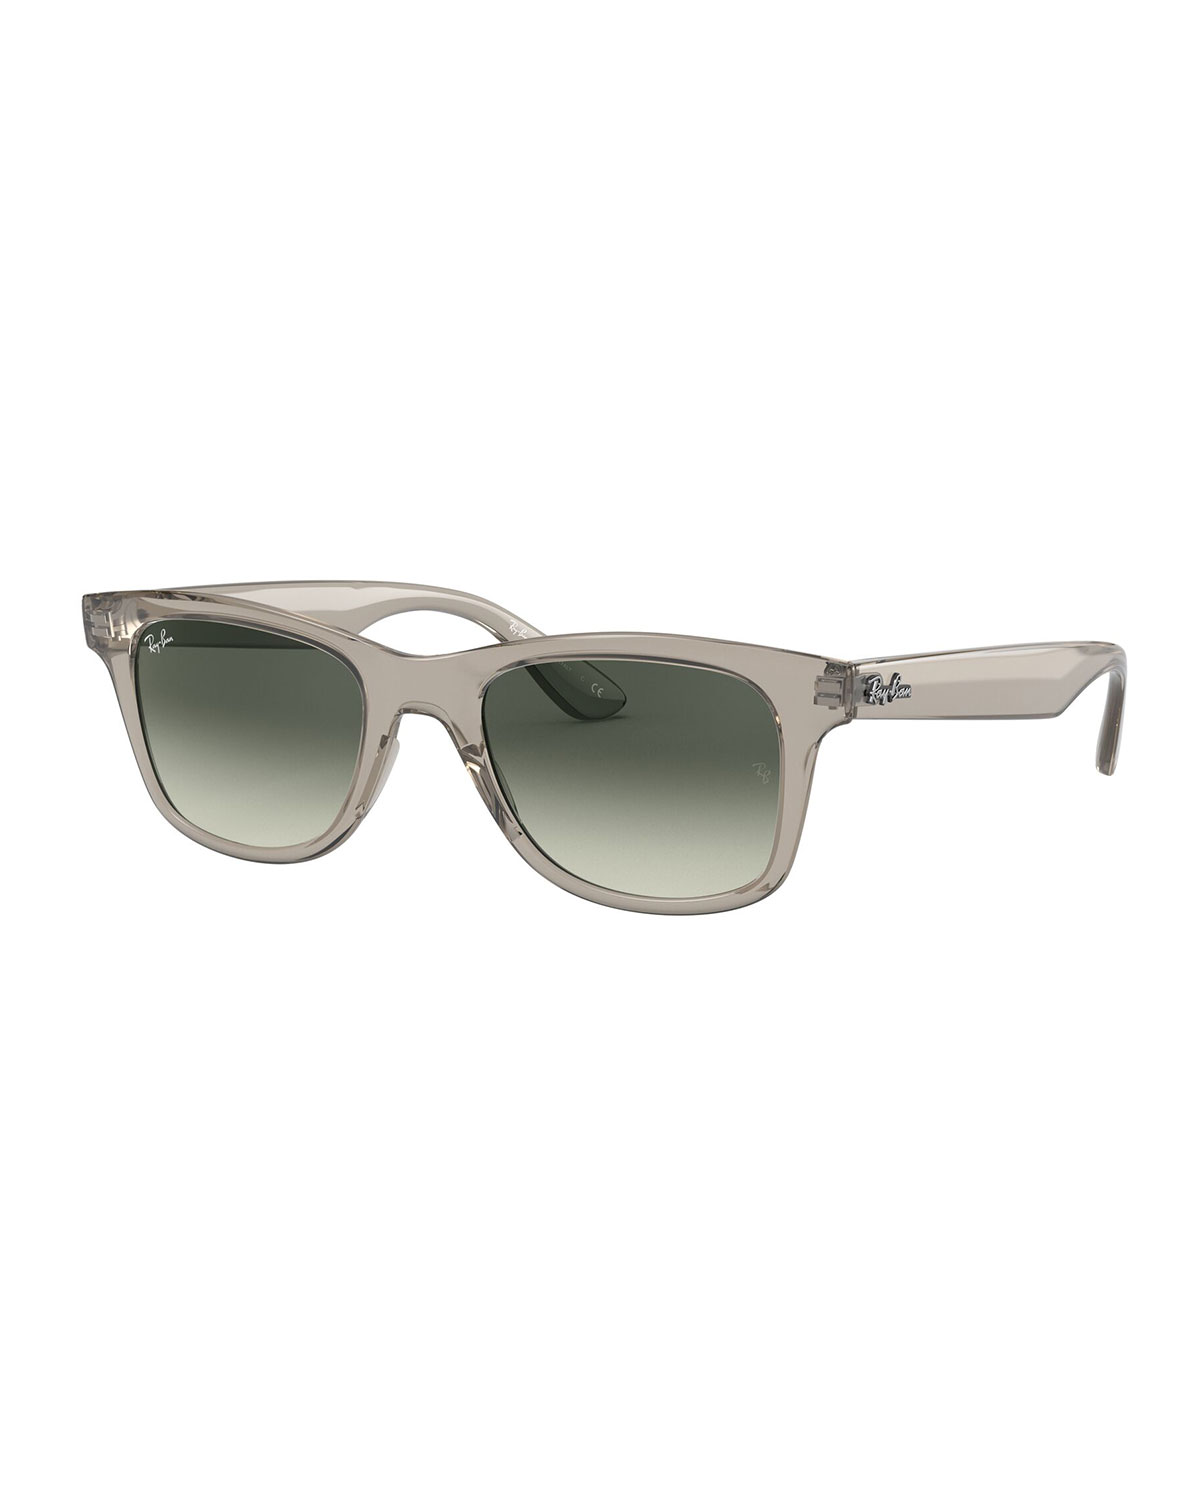 Ray Ban SQUARE ACETATE SUNGLASSES, TRANSPARENT GRAY